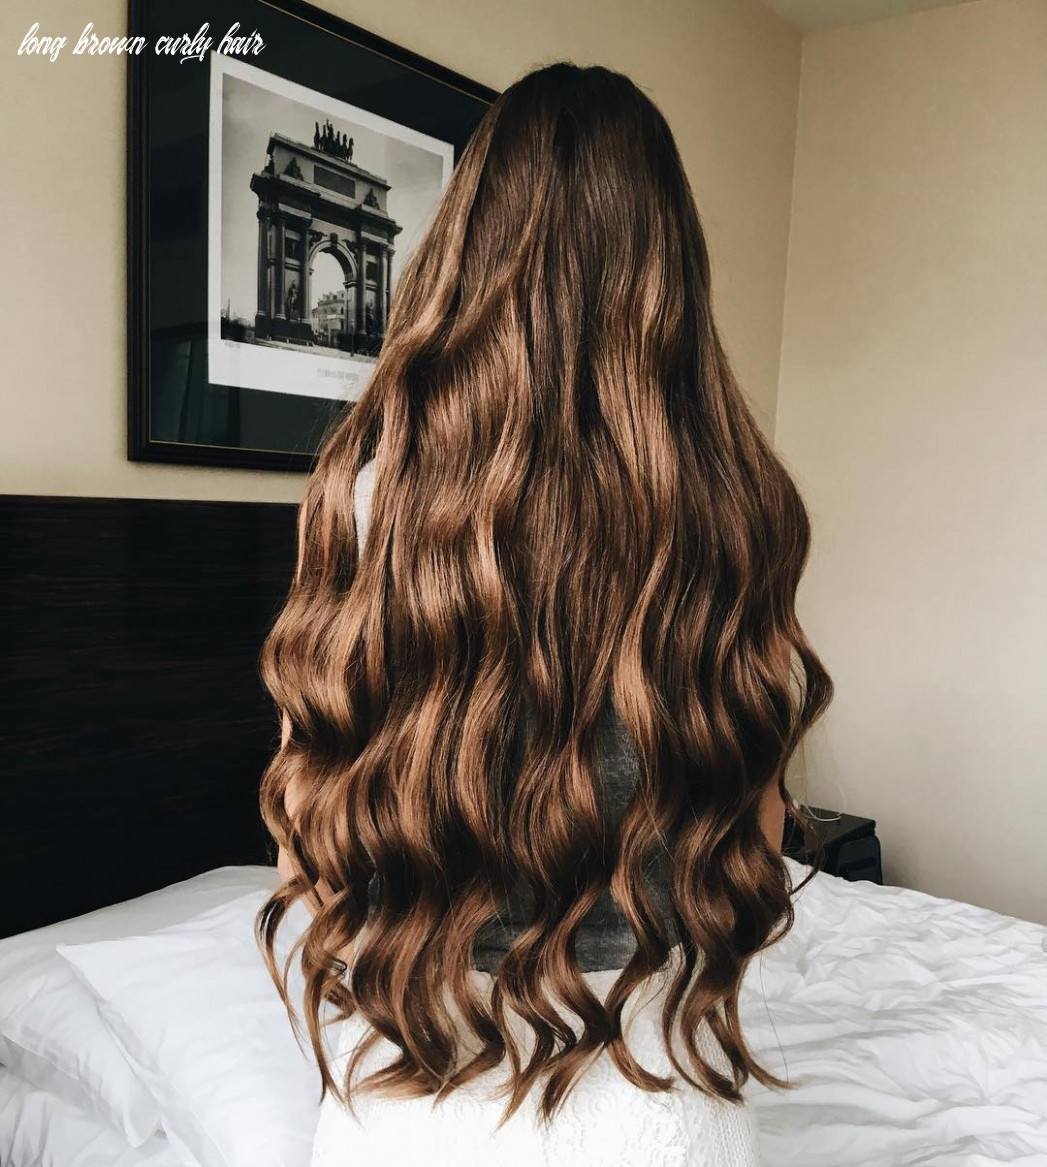 Long and wavy hair🥰 uploaded by brigitta király long brown curly hair